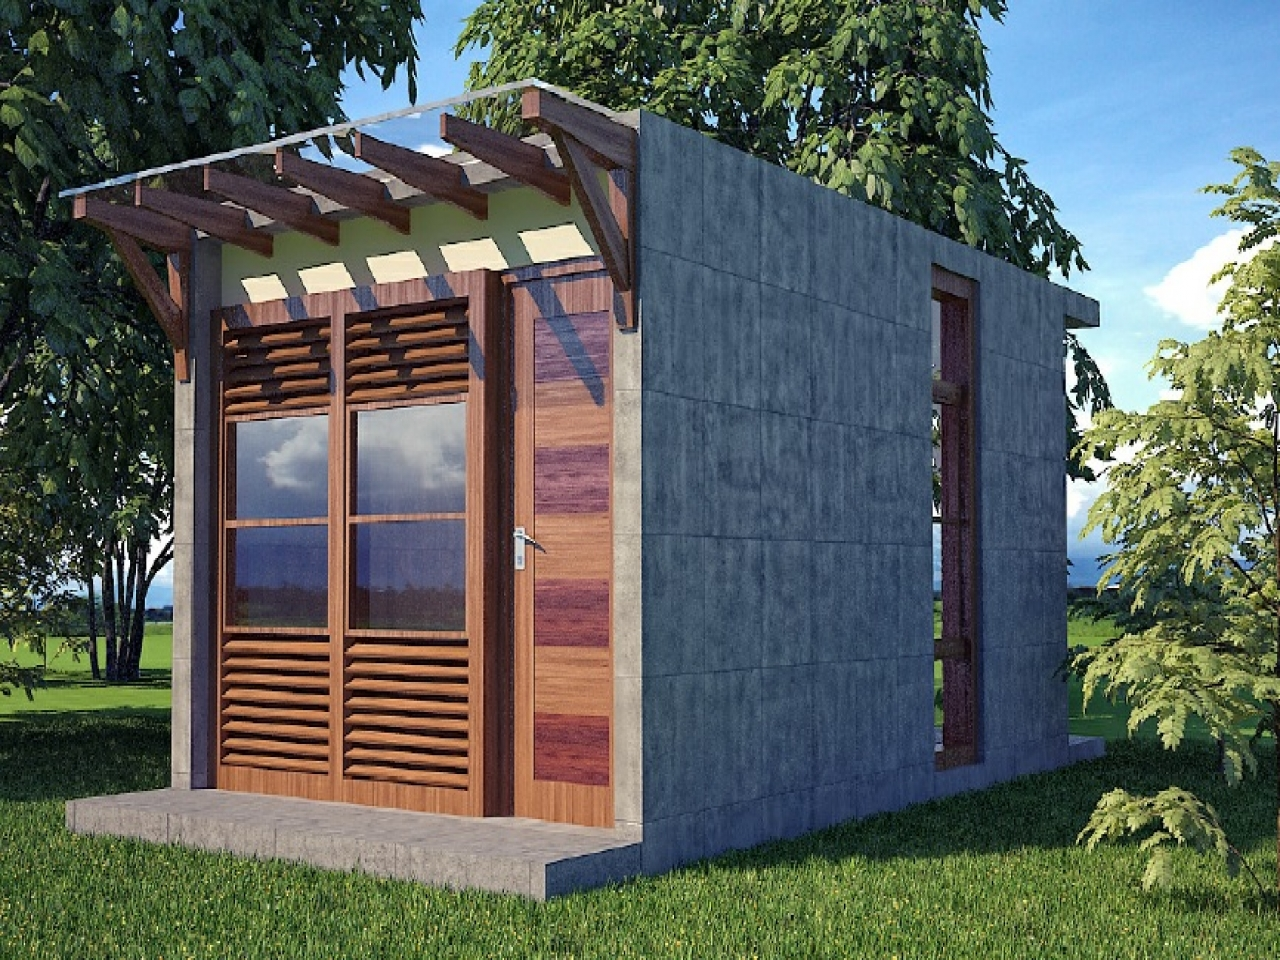 cheap house design philippines simple house designs philippines lrg d8ad2bc5bf3eb529 - Download Small Tiny House Design Philippines Gif